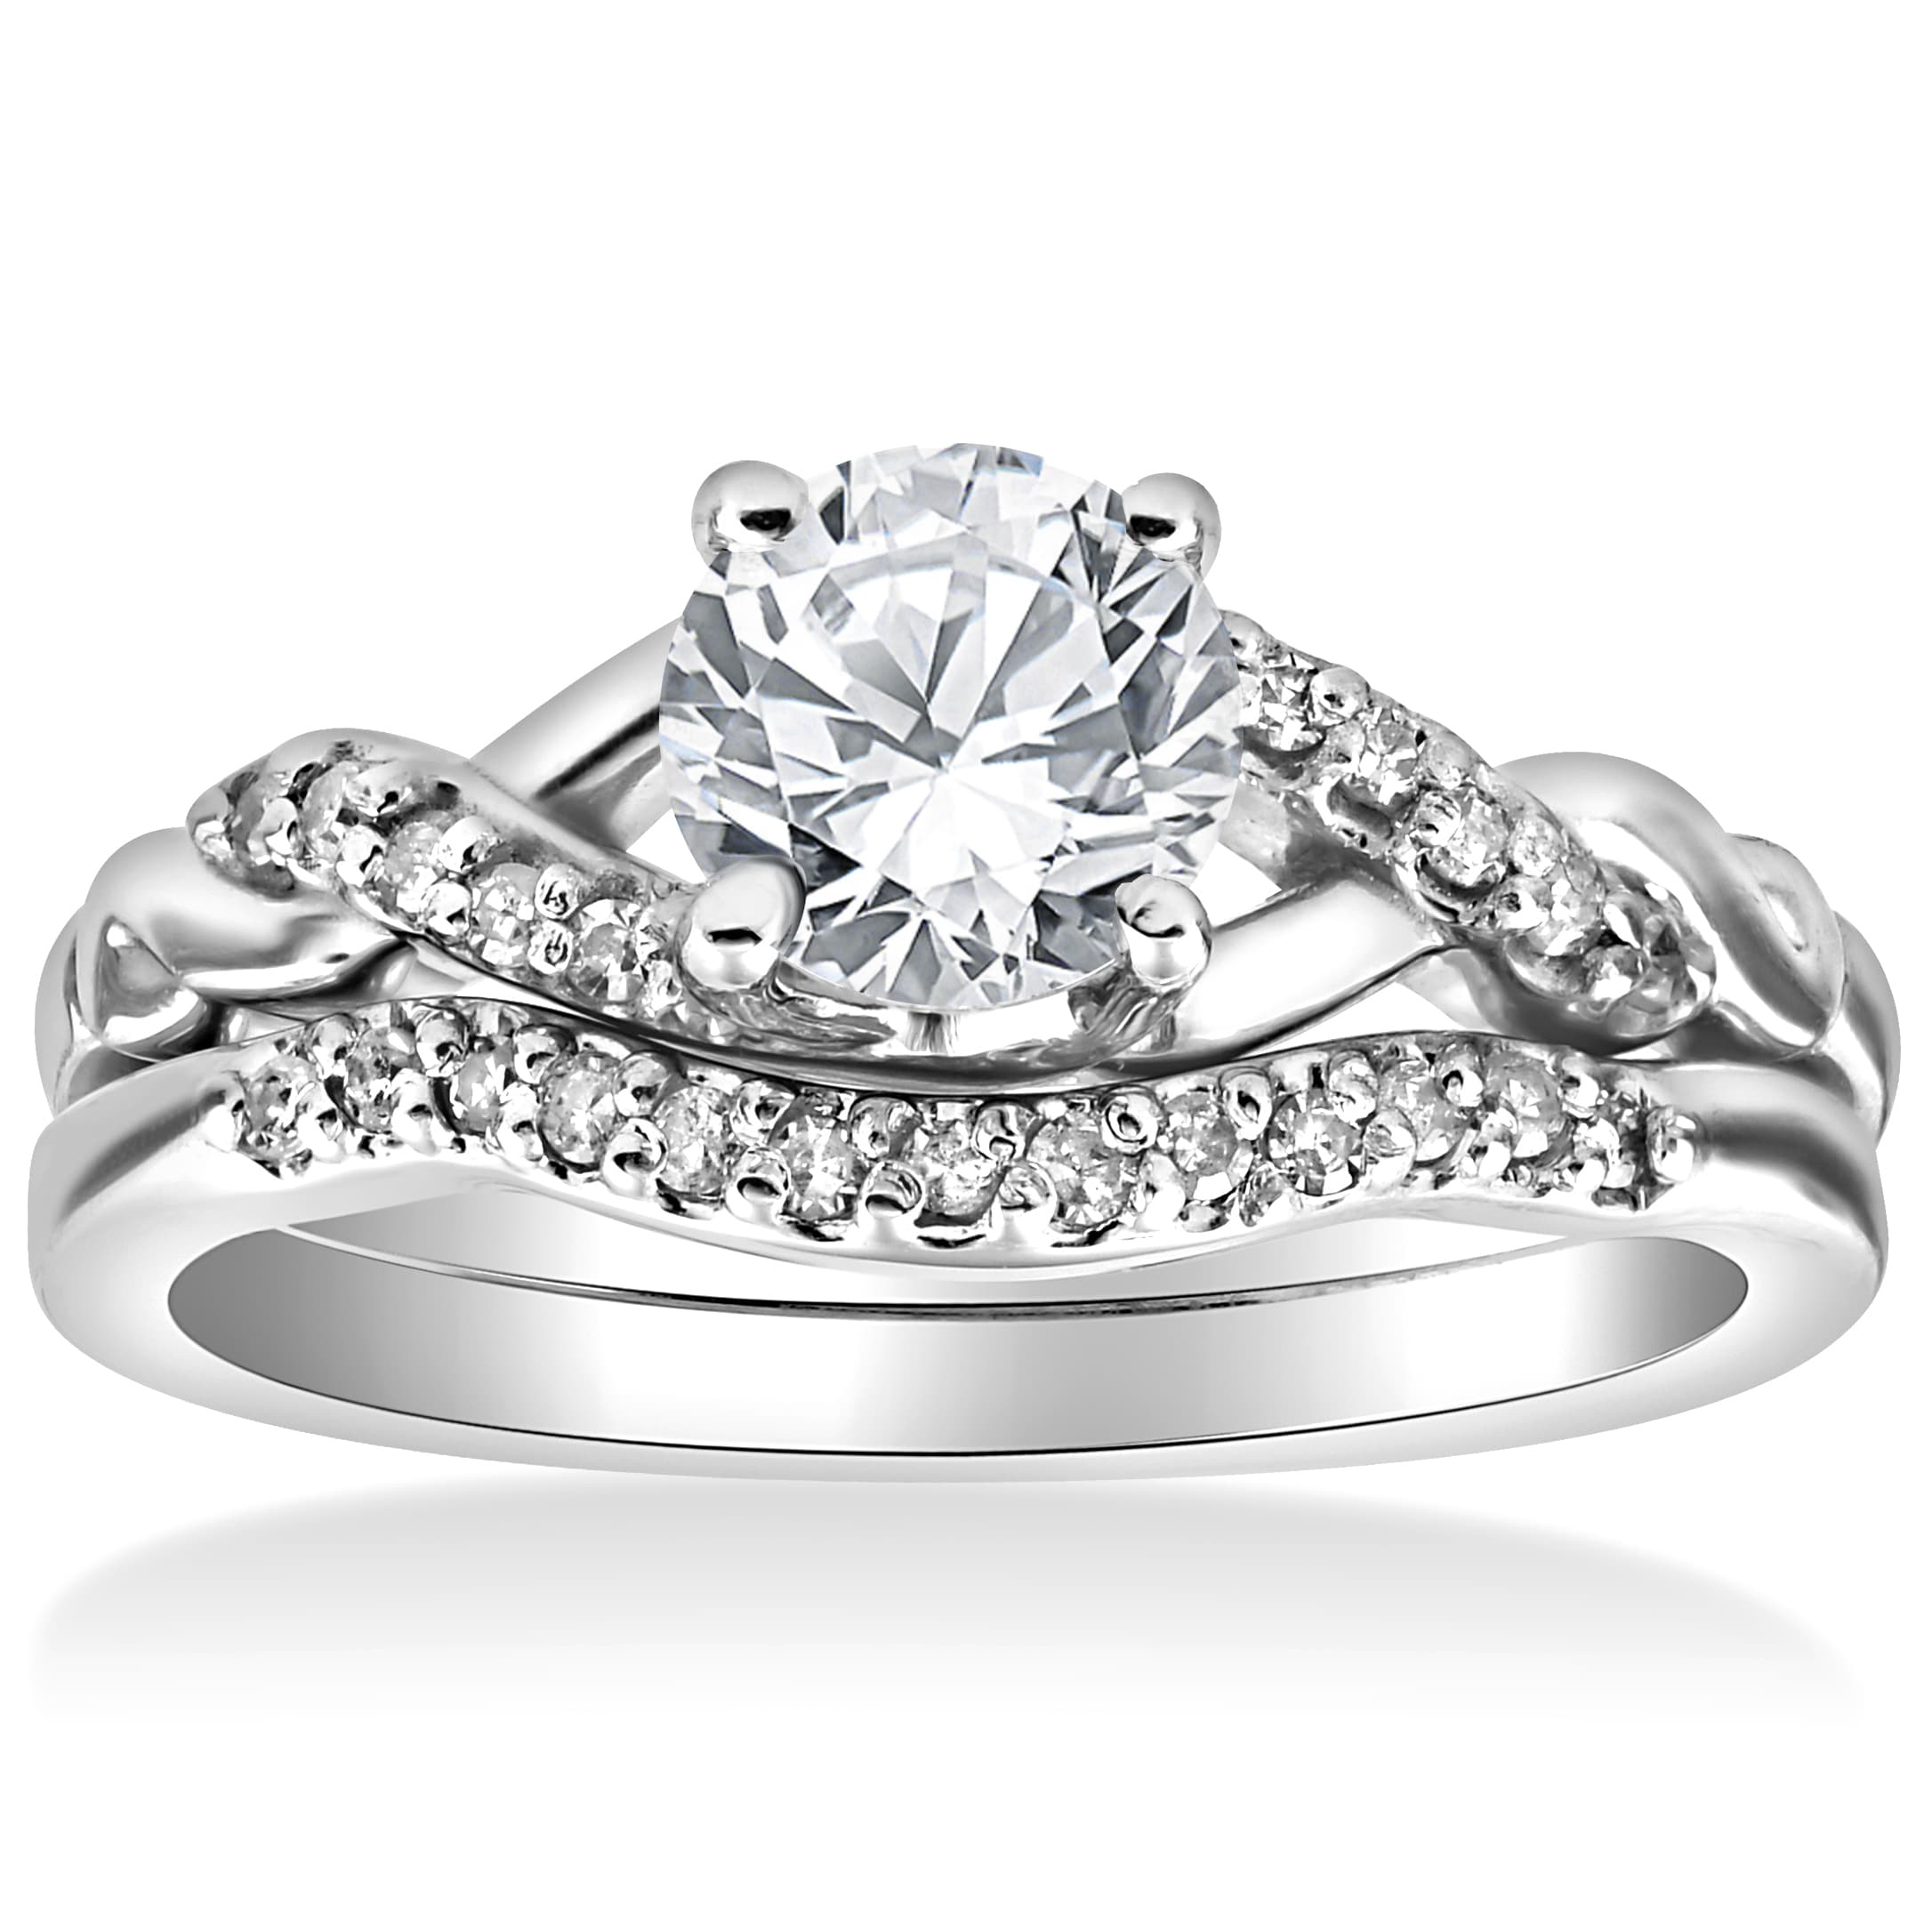 14K White Gold 5 8 cttw Diamond Engagement Matching Wedding Ring